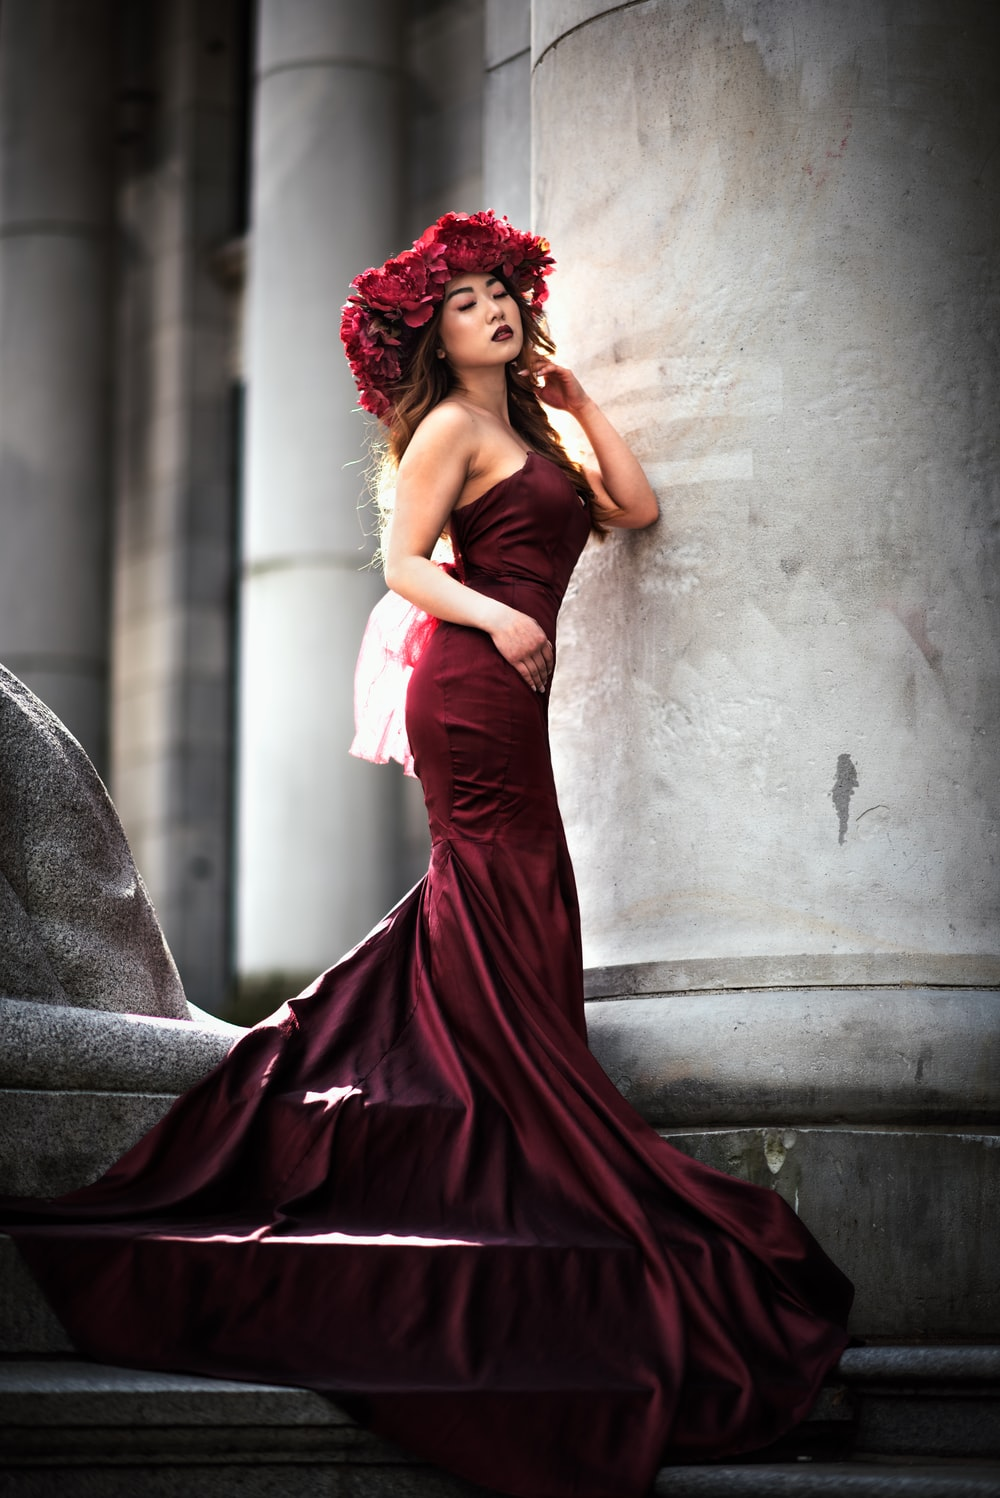 woman in red tube dress leaning on gray concrete wall